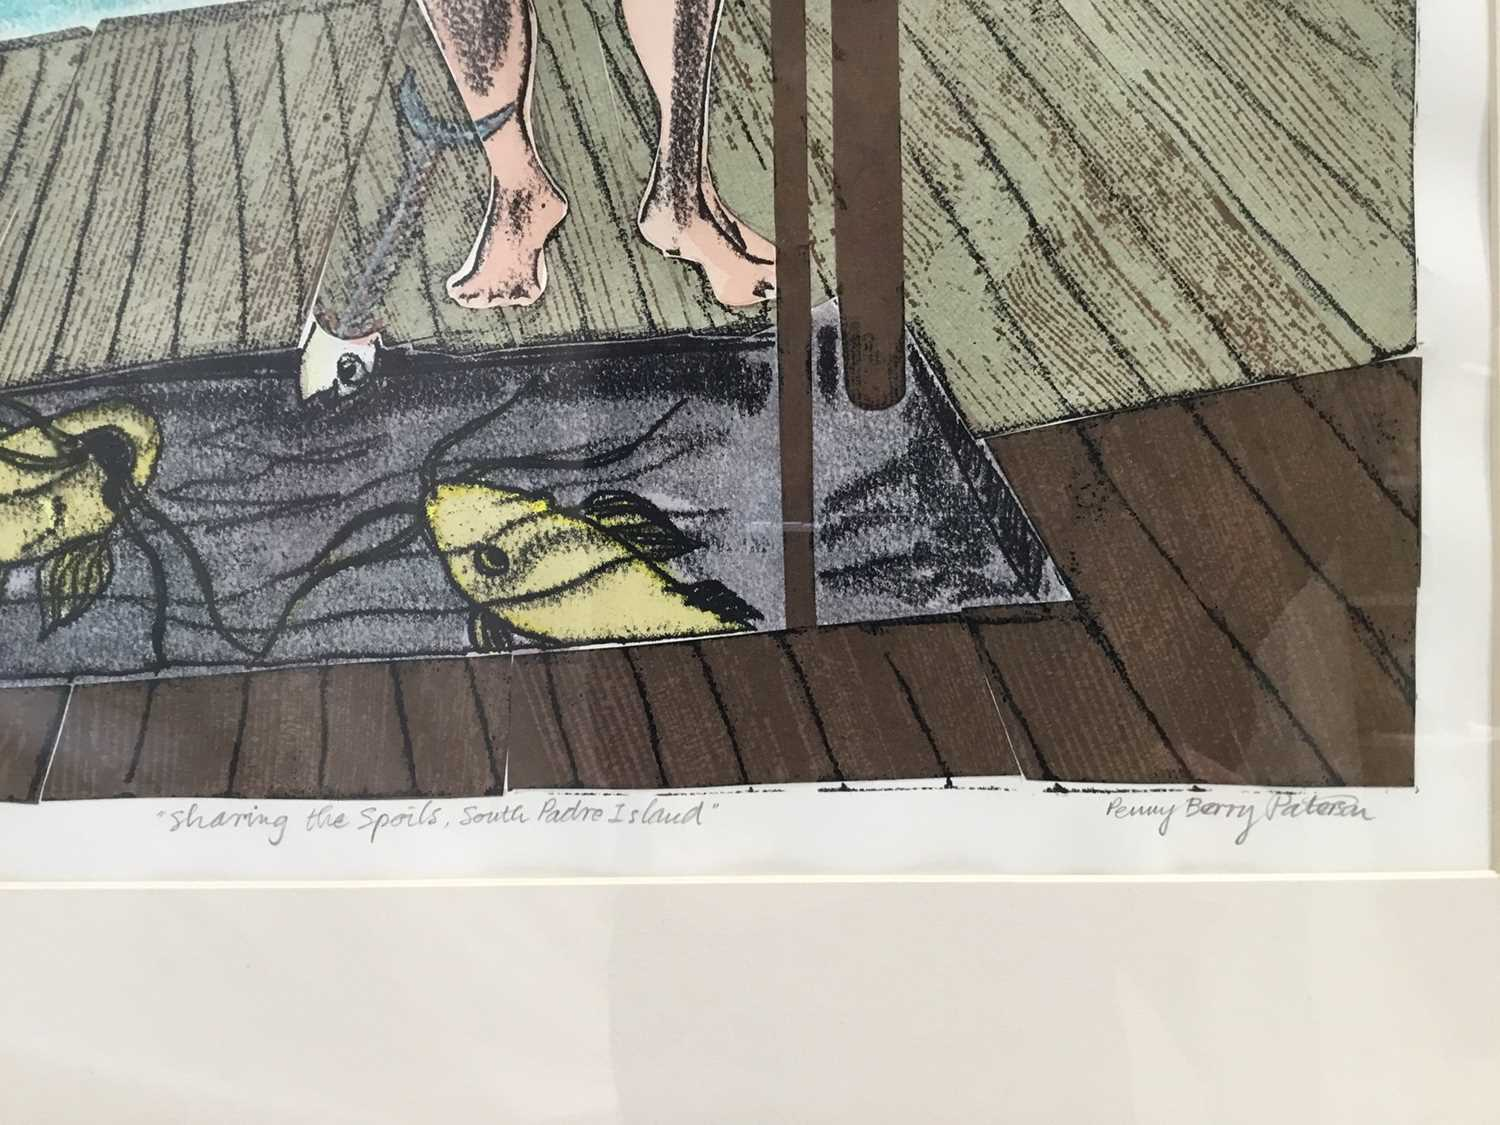 Penny Berry Paterson (1941-2021) monoprint - Sharing the spoils, South Padre Island, signed titled a - Image 2 of 7